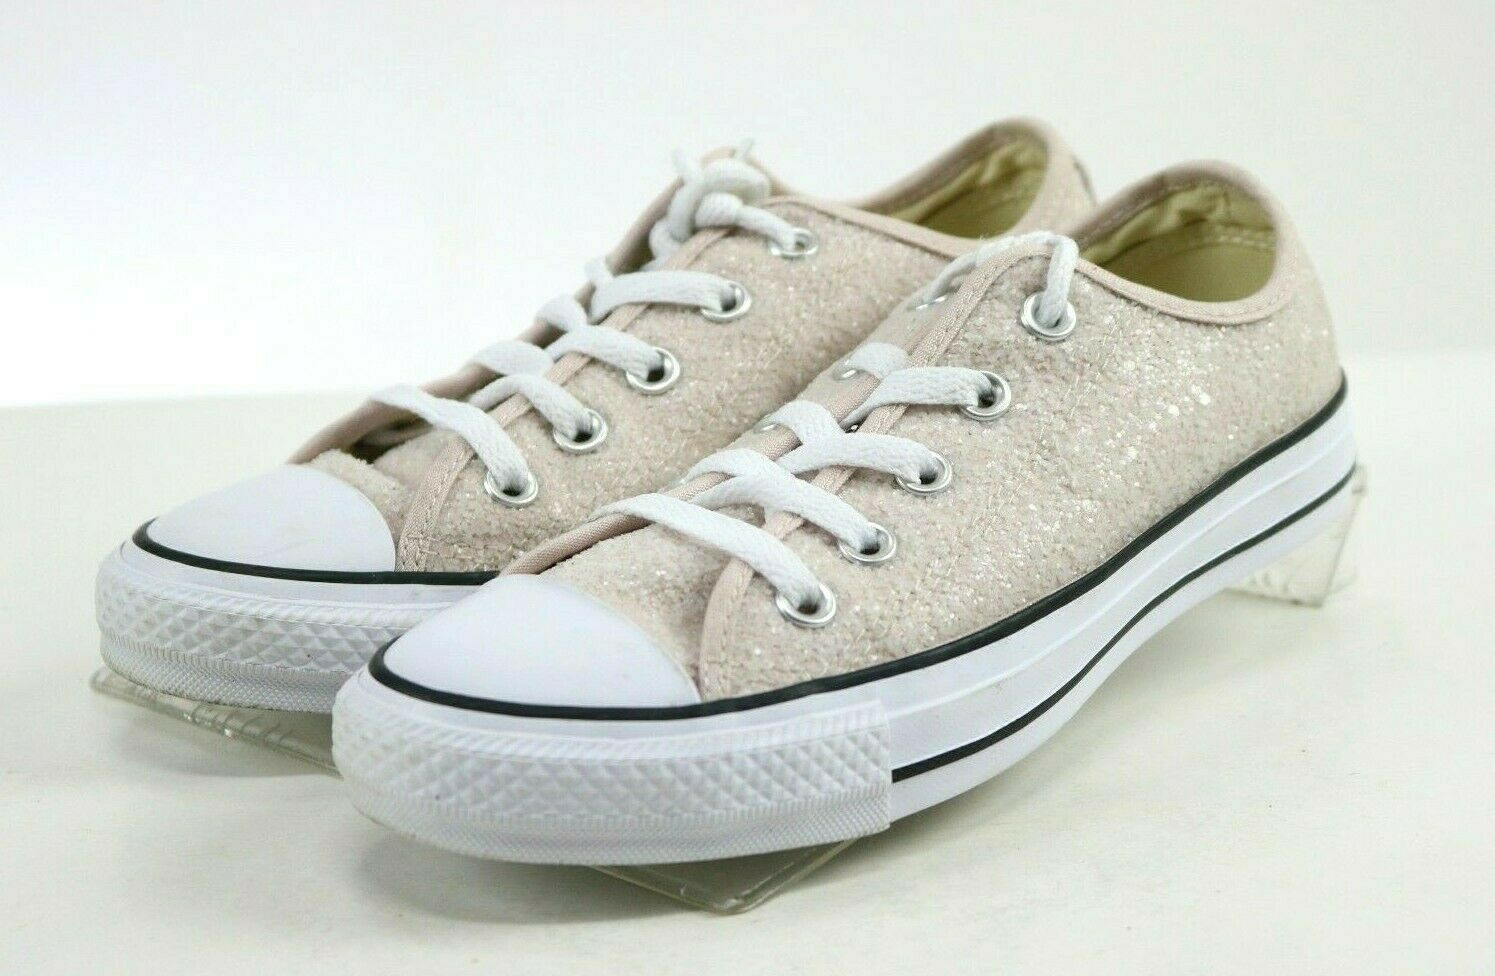 Converse CT All Star Women's Low Top Sneakers Shoes Size 6 Glittered Pink